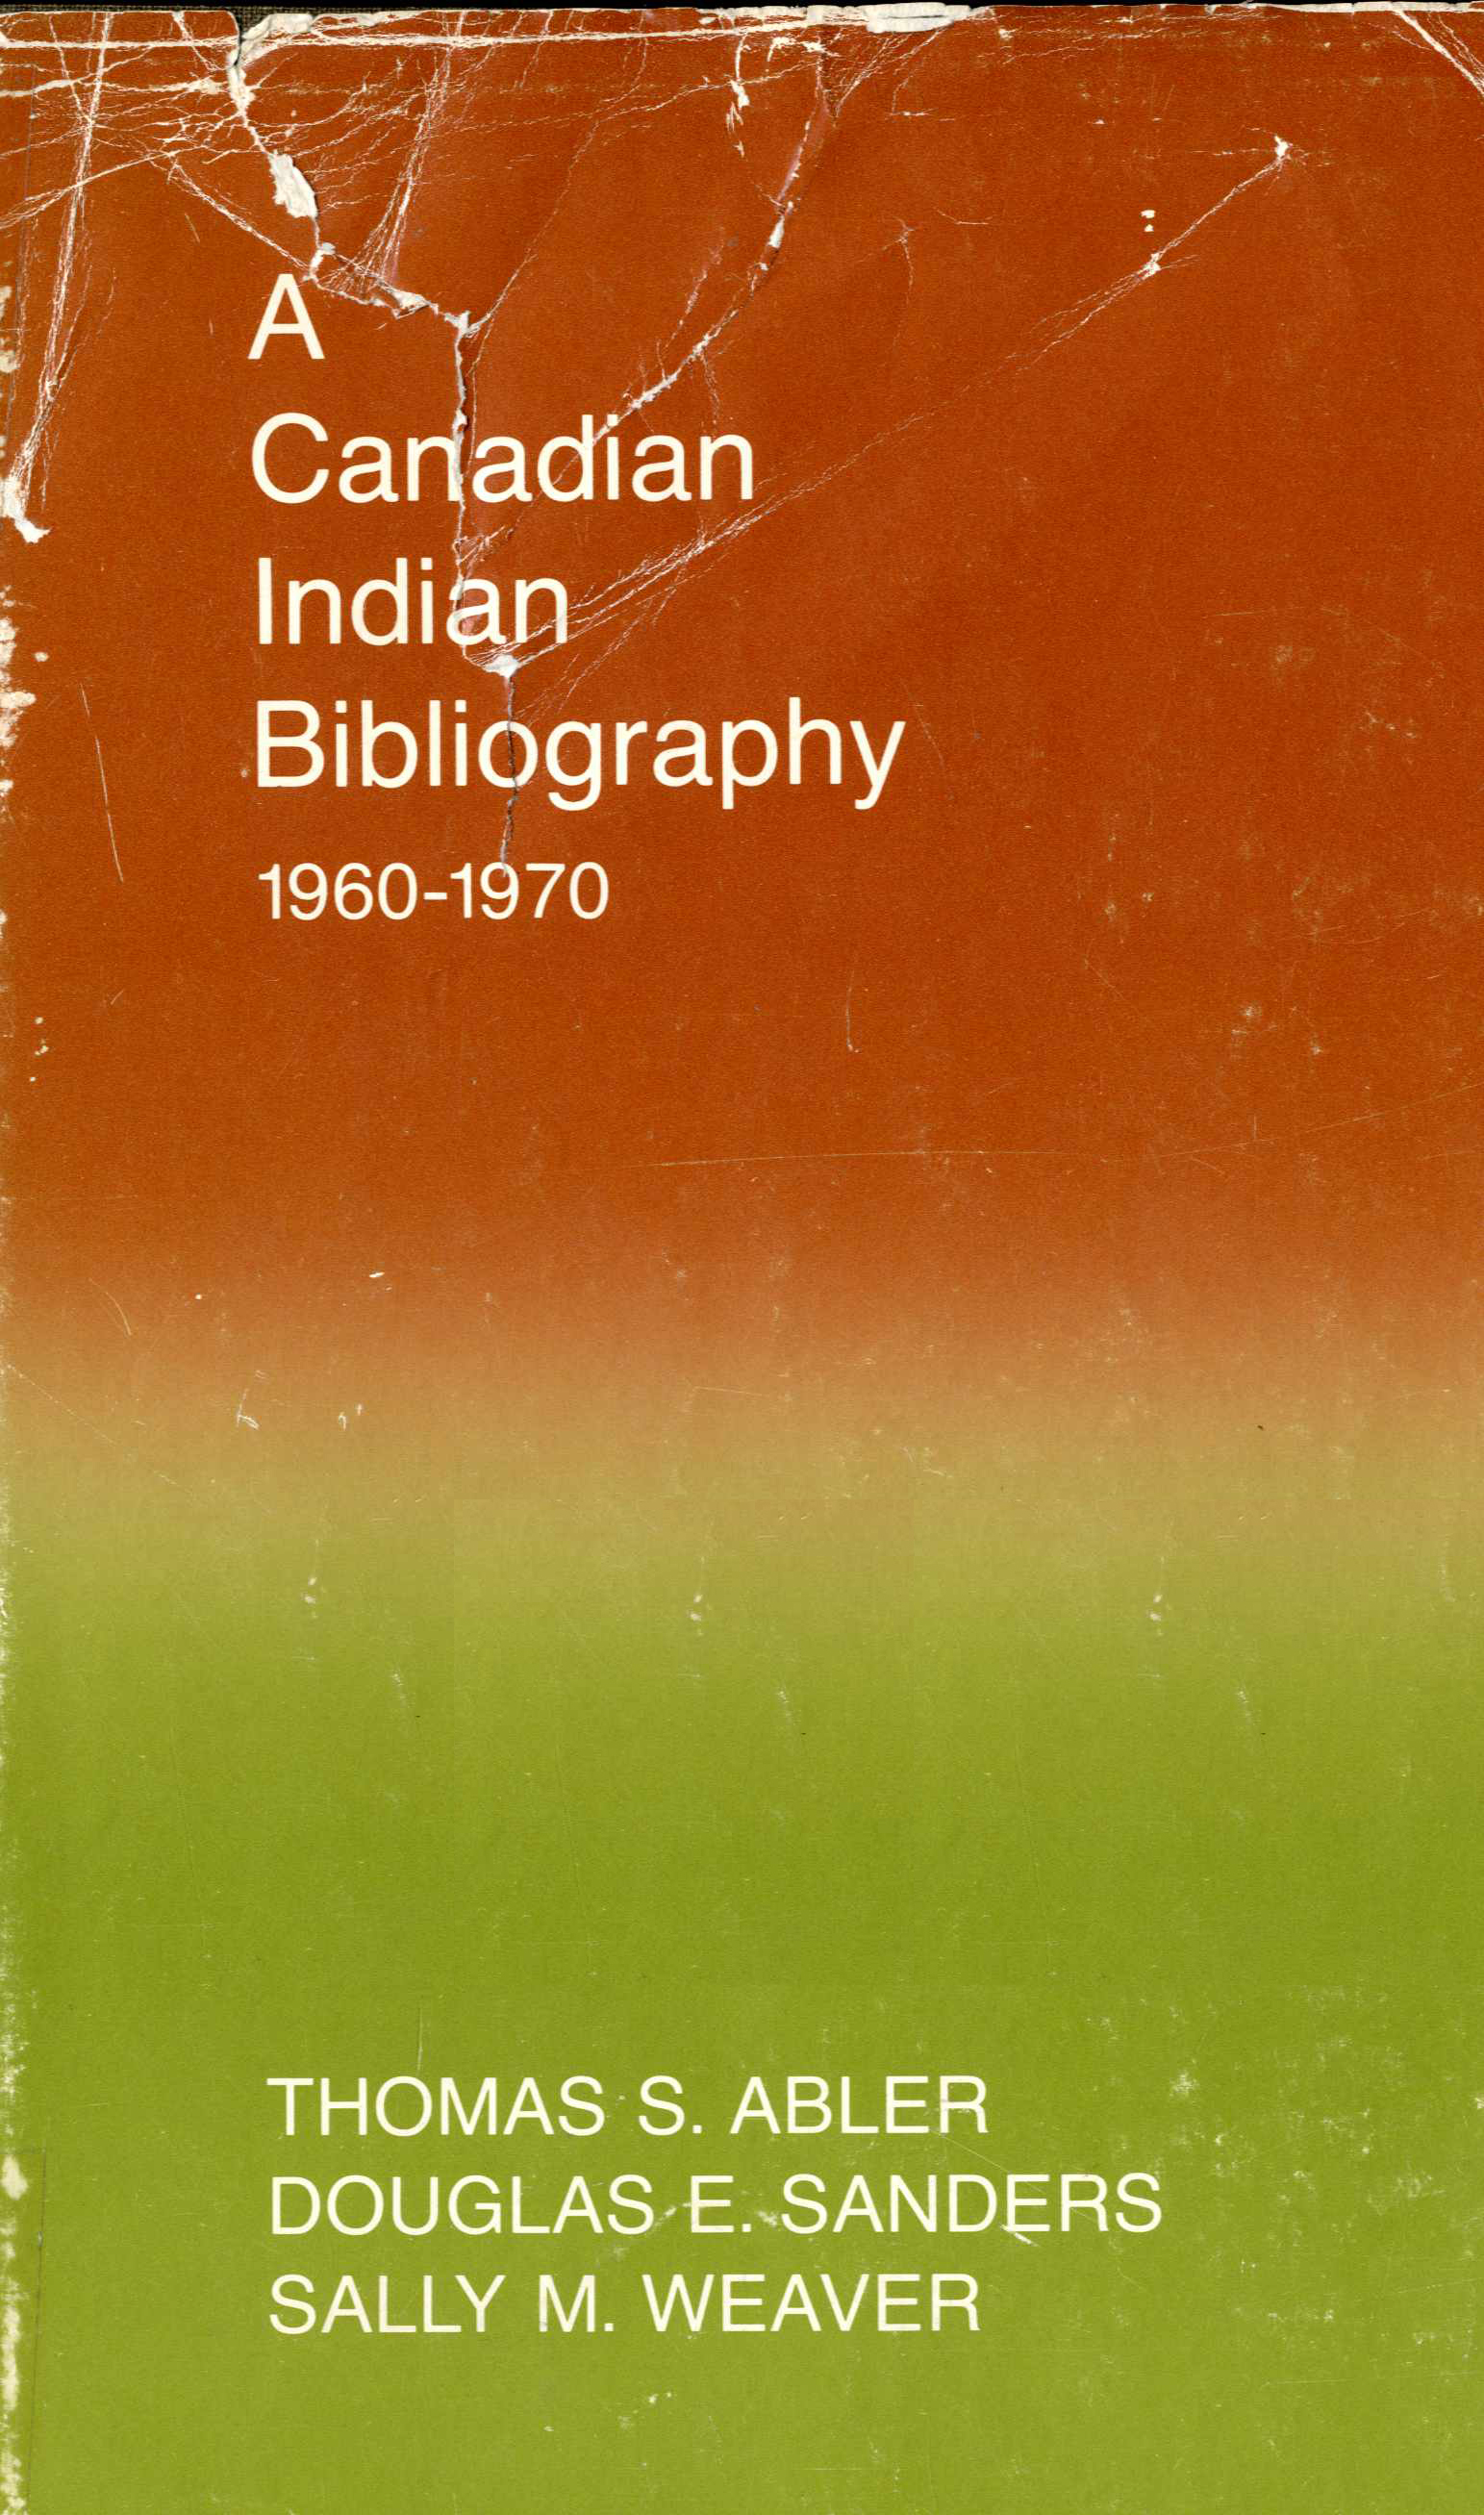 A Canadian Indian Bibliography 1960-1970 Image